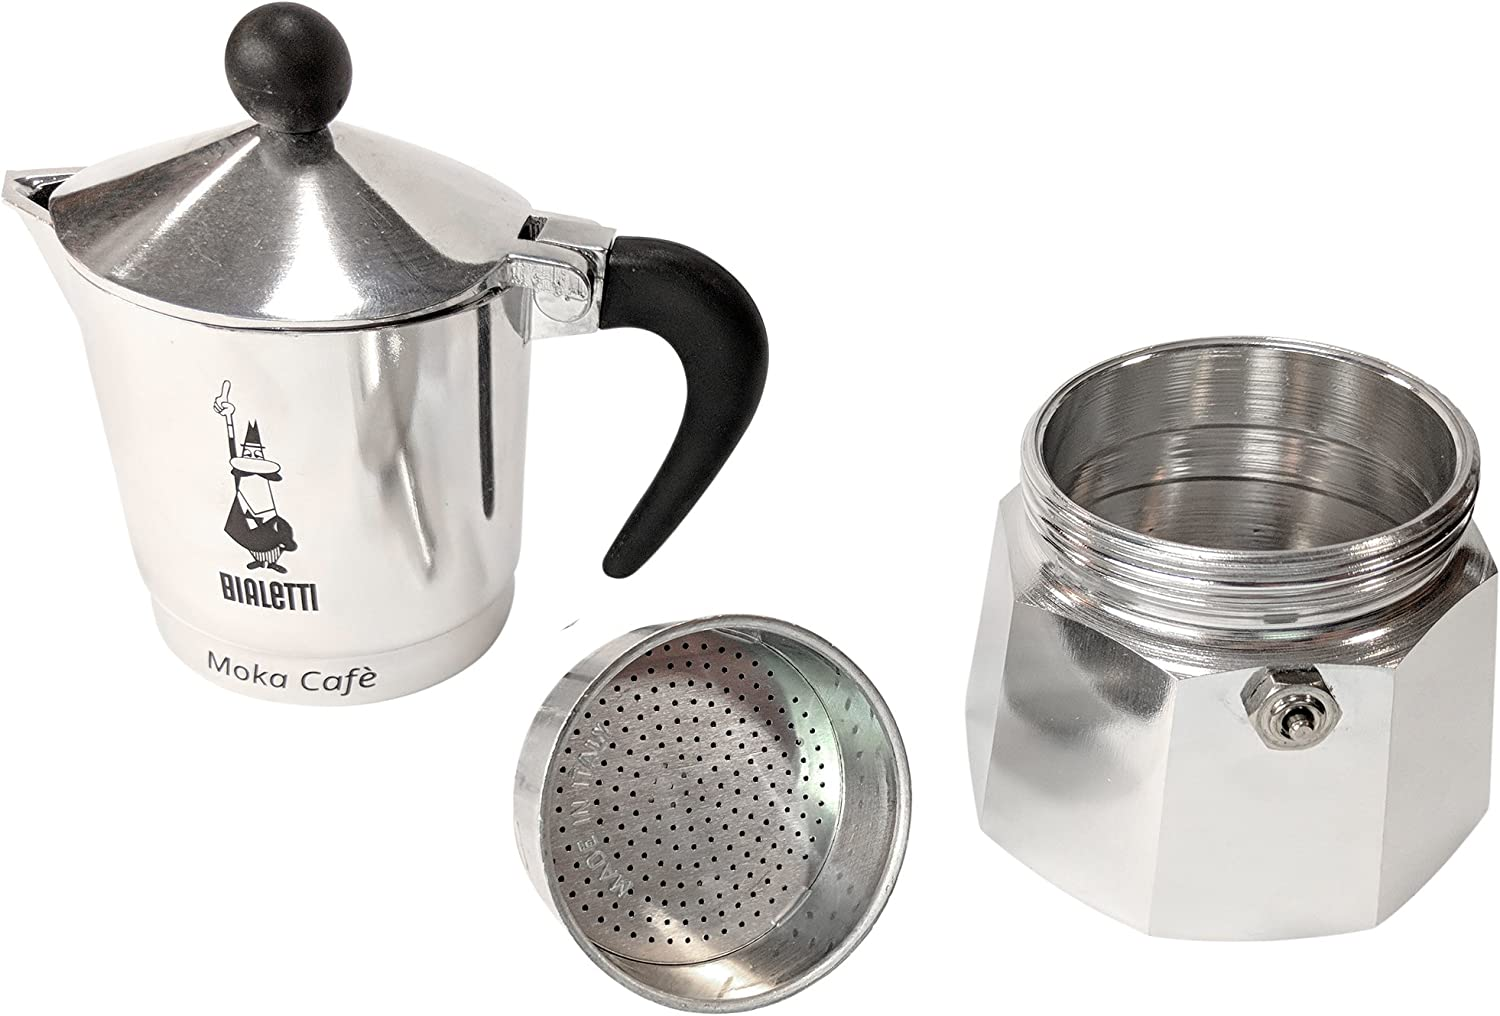 Amazon.com: Bialetti 5923 Break universal cafetera de ...